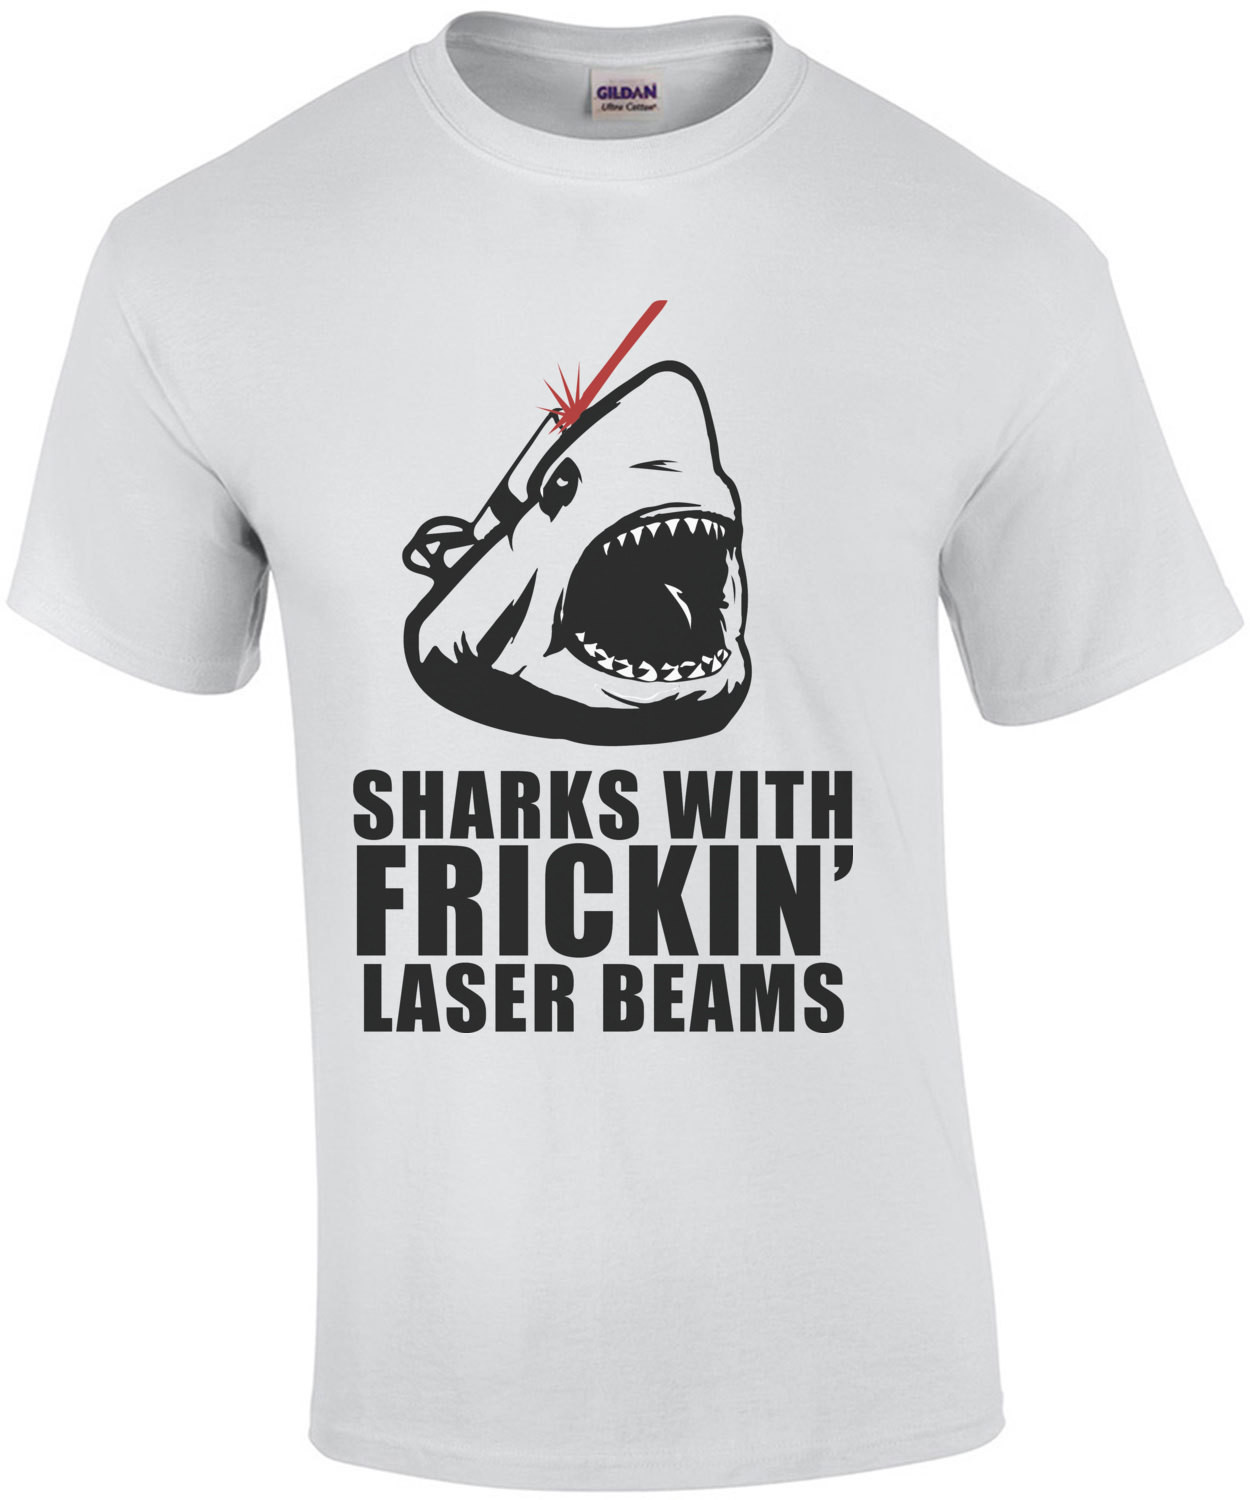 Sharks with frickin laser beams - austin powers